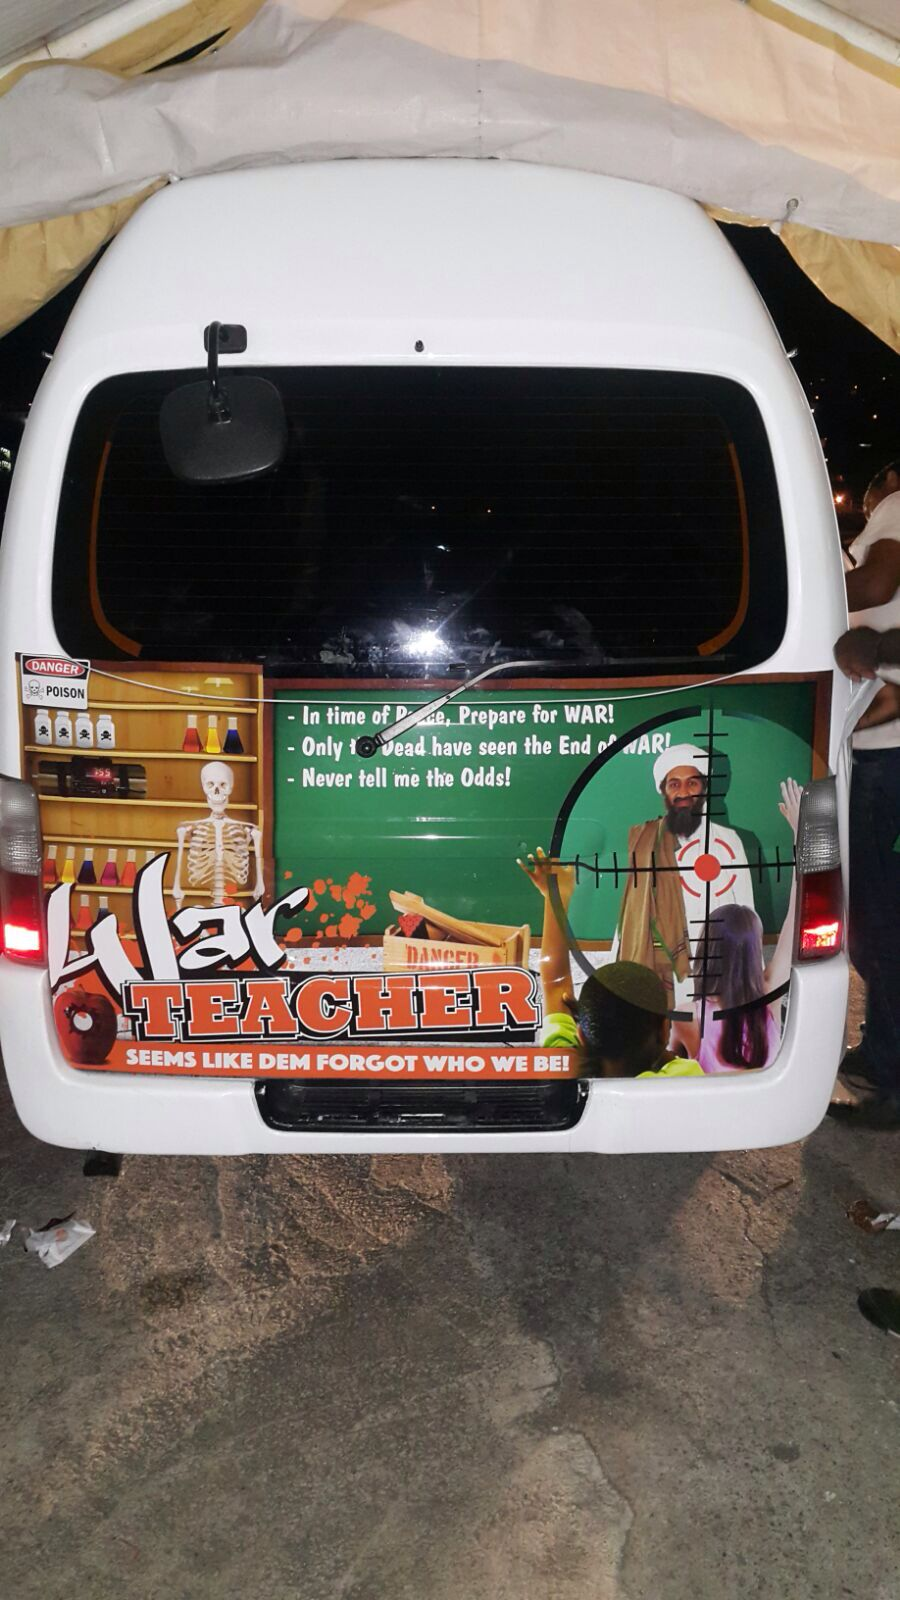 "A controversial image on a van of Osama Bin Laden - The driver was asked to take it off after having complaints about the image. The driver explained that he did not advocate Osama Bin Laden's doctrine , but more so just commented that he was "" Hard to Kill "" and he thought it was worth mentioning. Picture Courtesy of Mickel Carr."